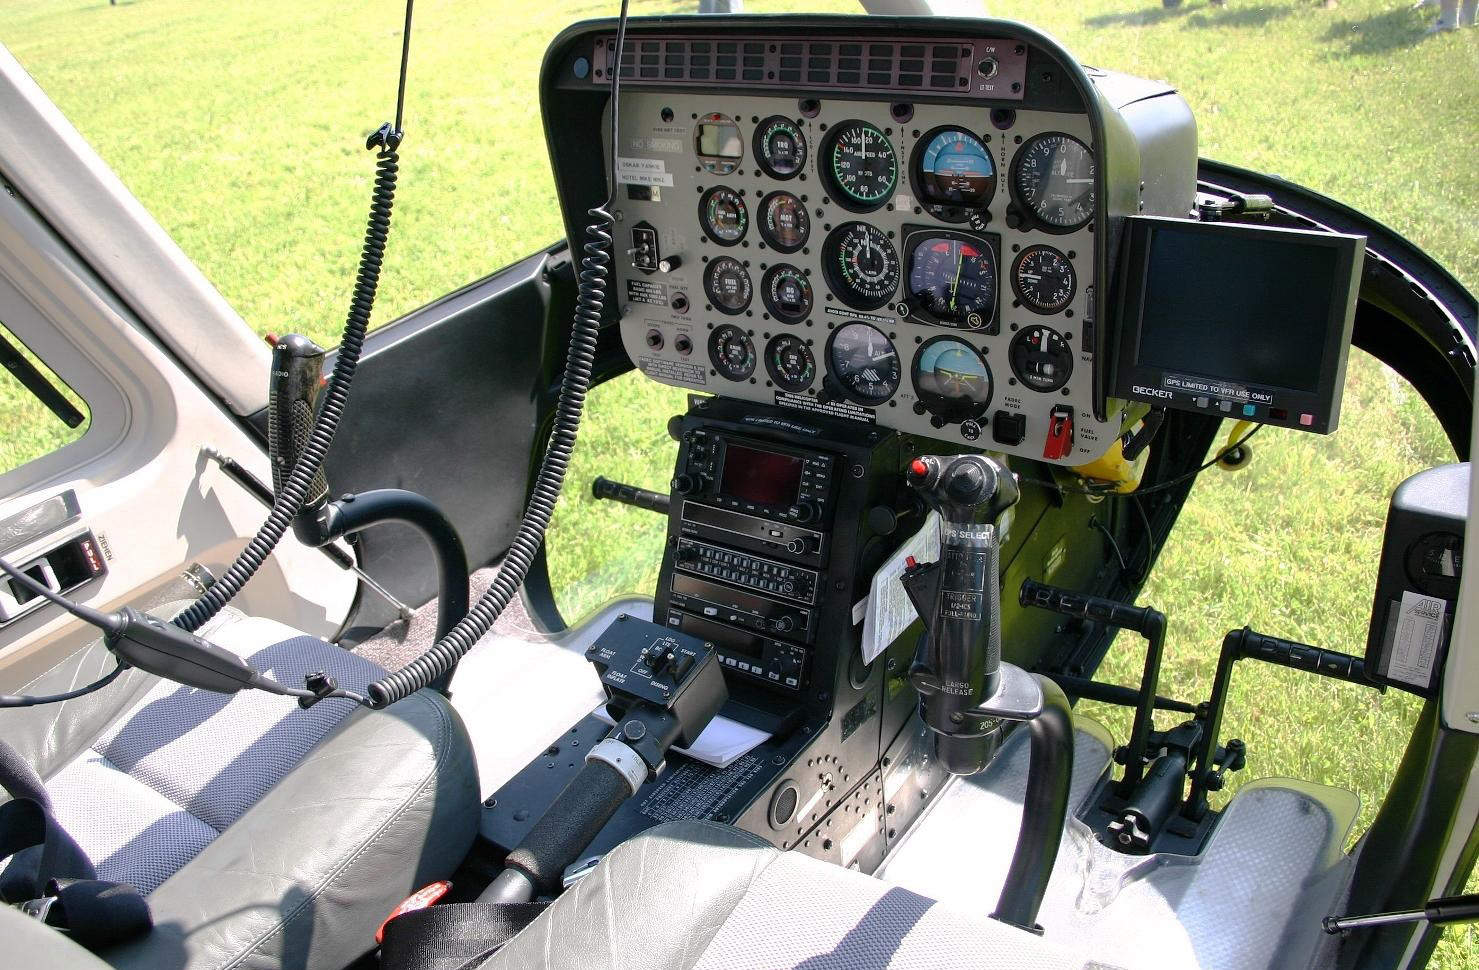 407-helicopters-for-sale-5.jpg